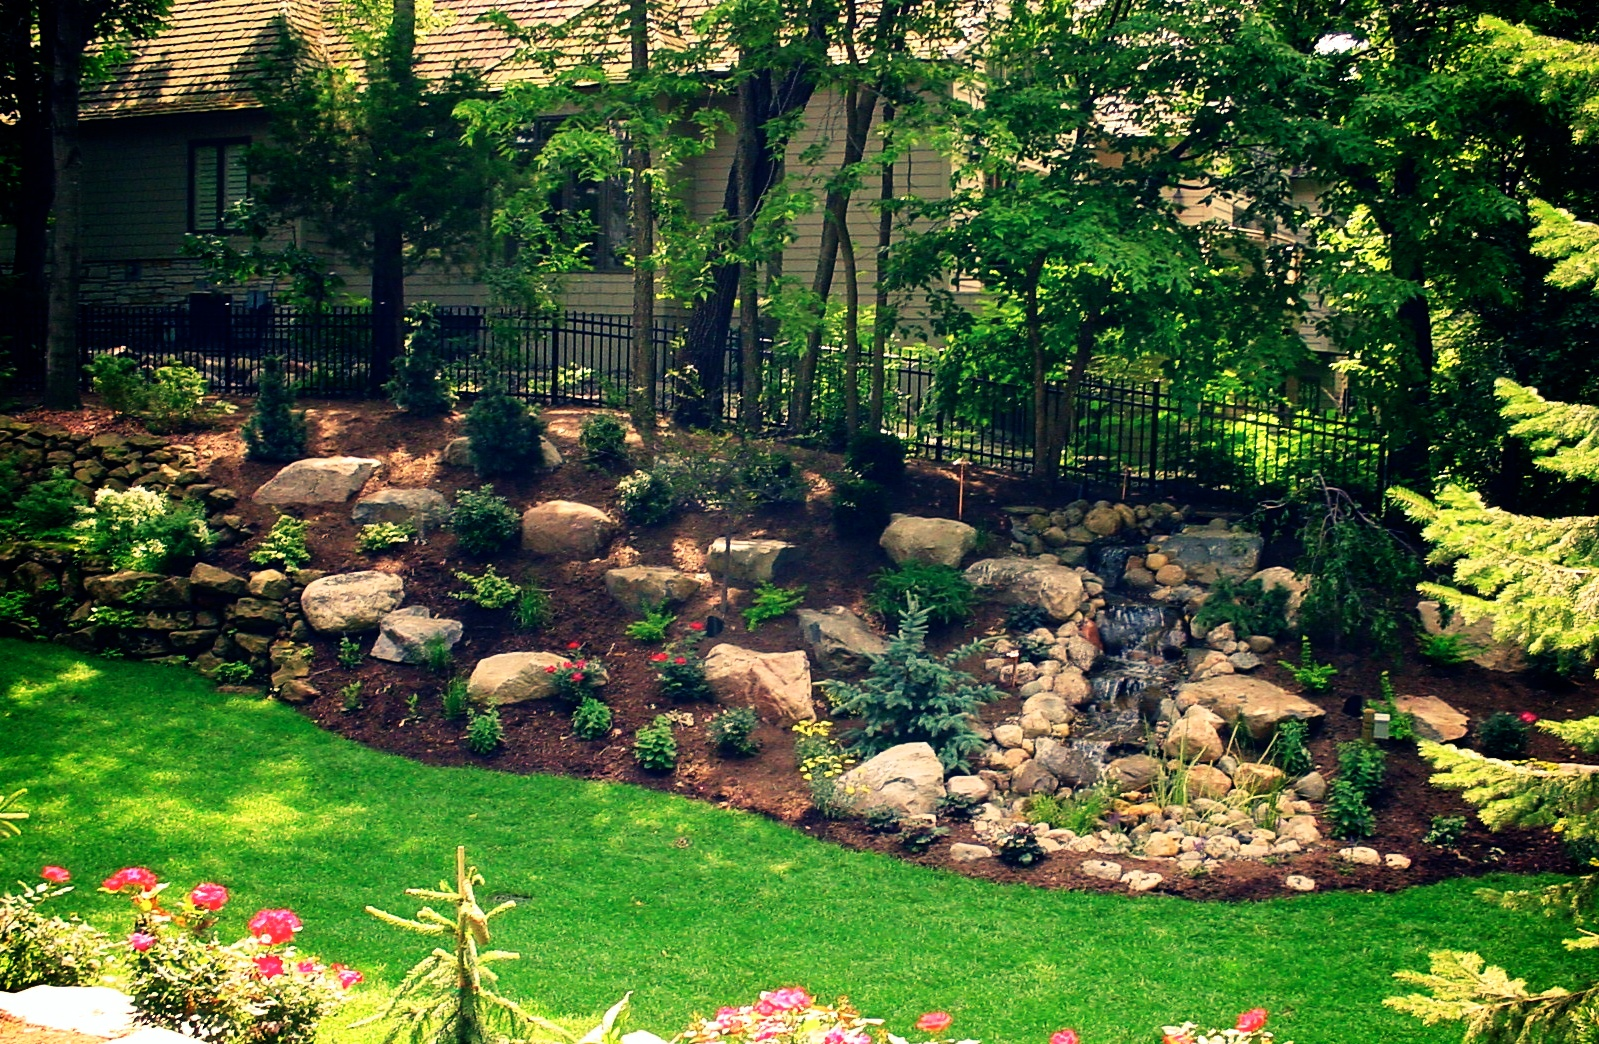 Backyard landscaping great goats landscapinggreat goats for Landscape images